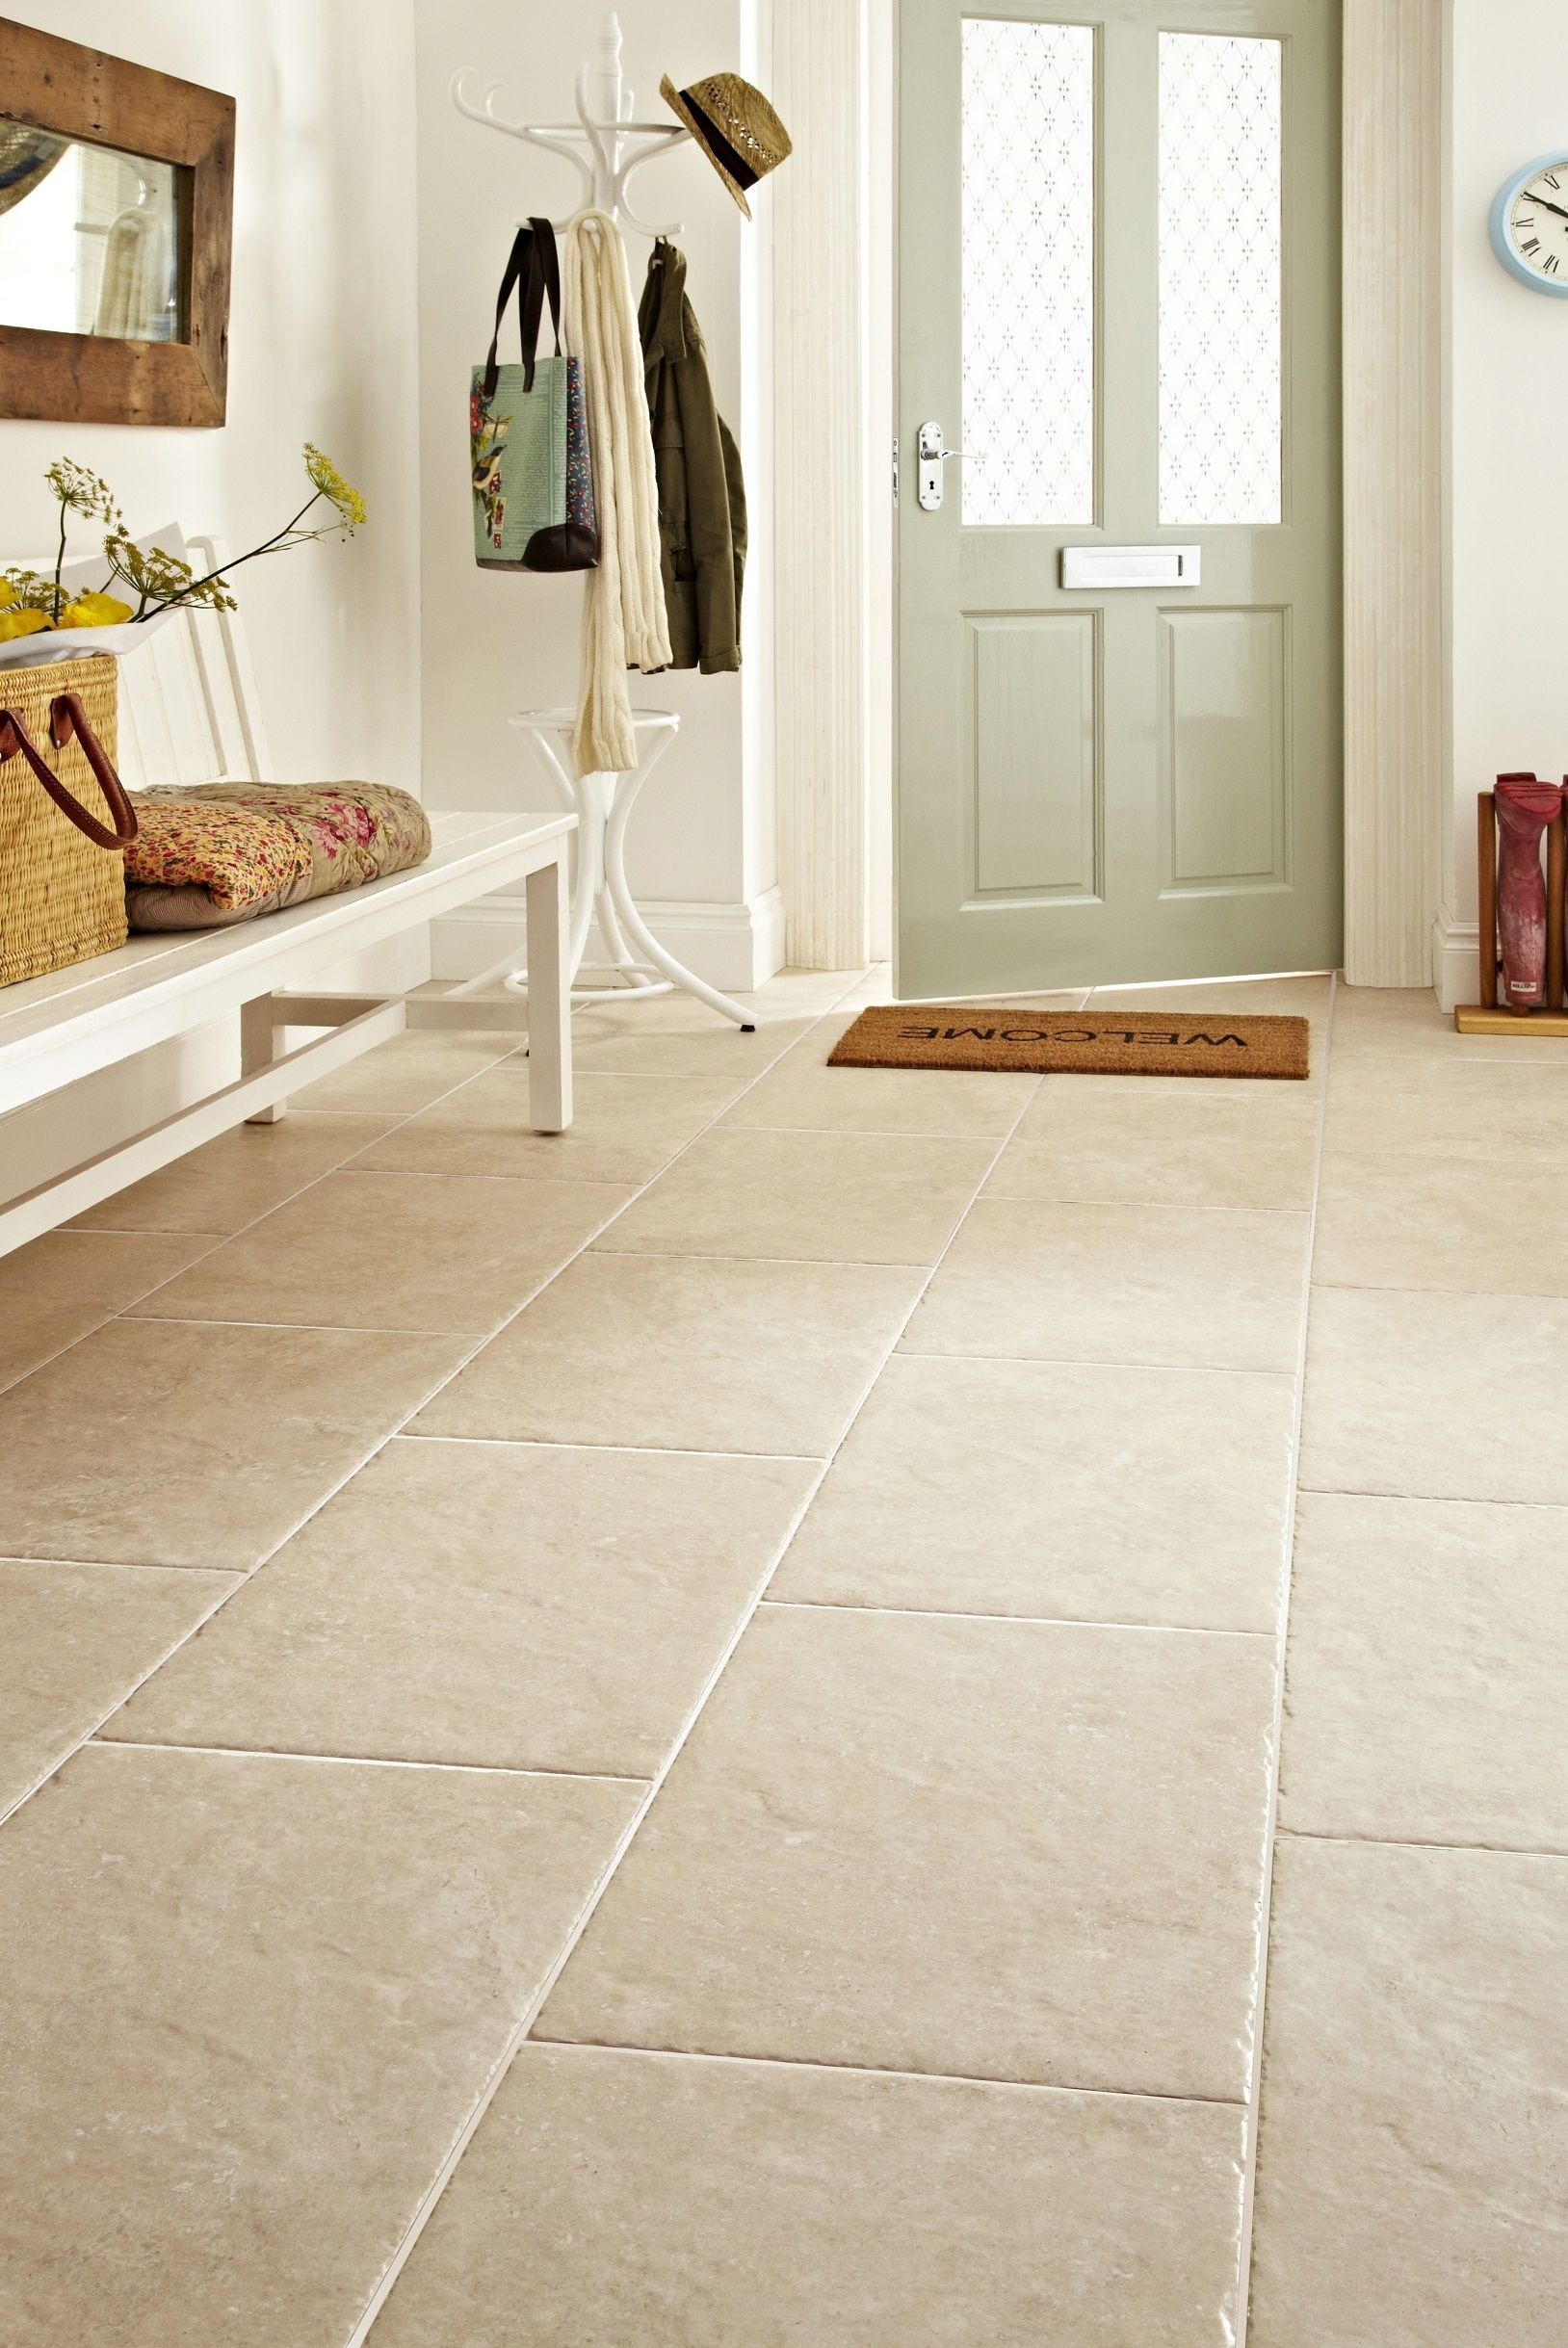 Devon Bone From Topps Tiles Potential For The Dining Room Floor Layjao